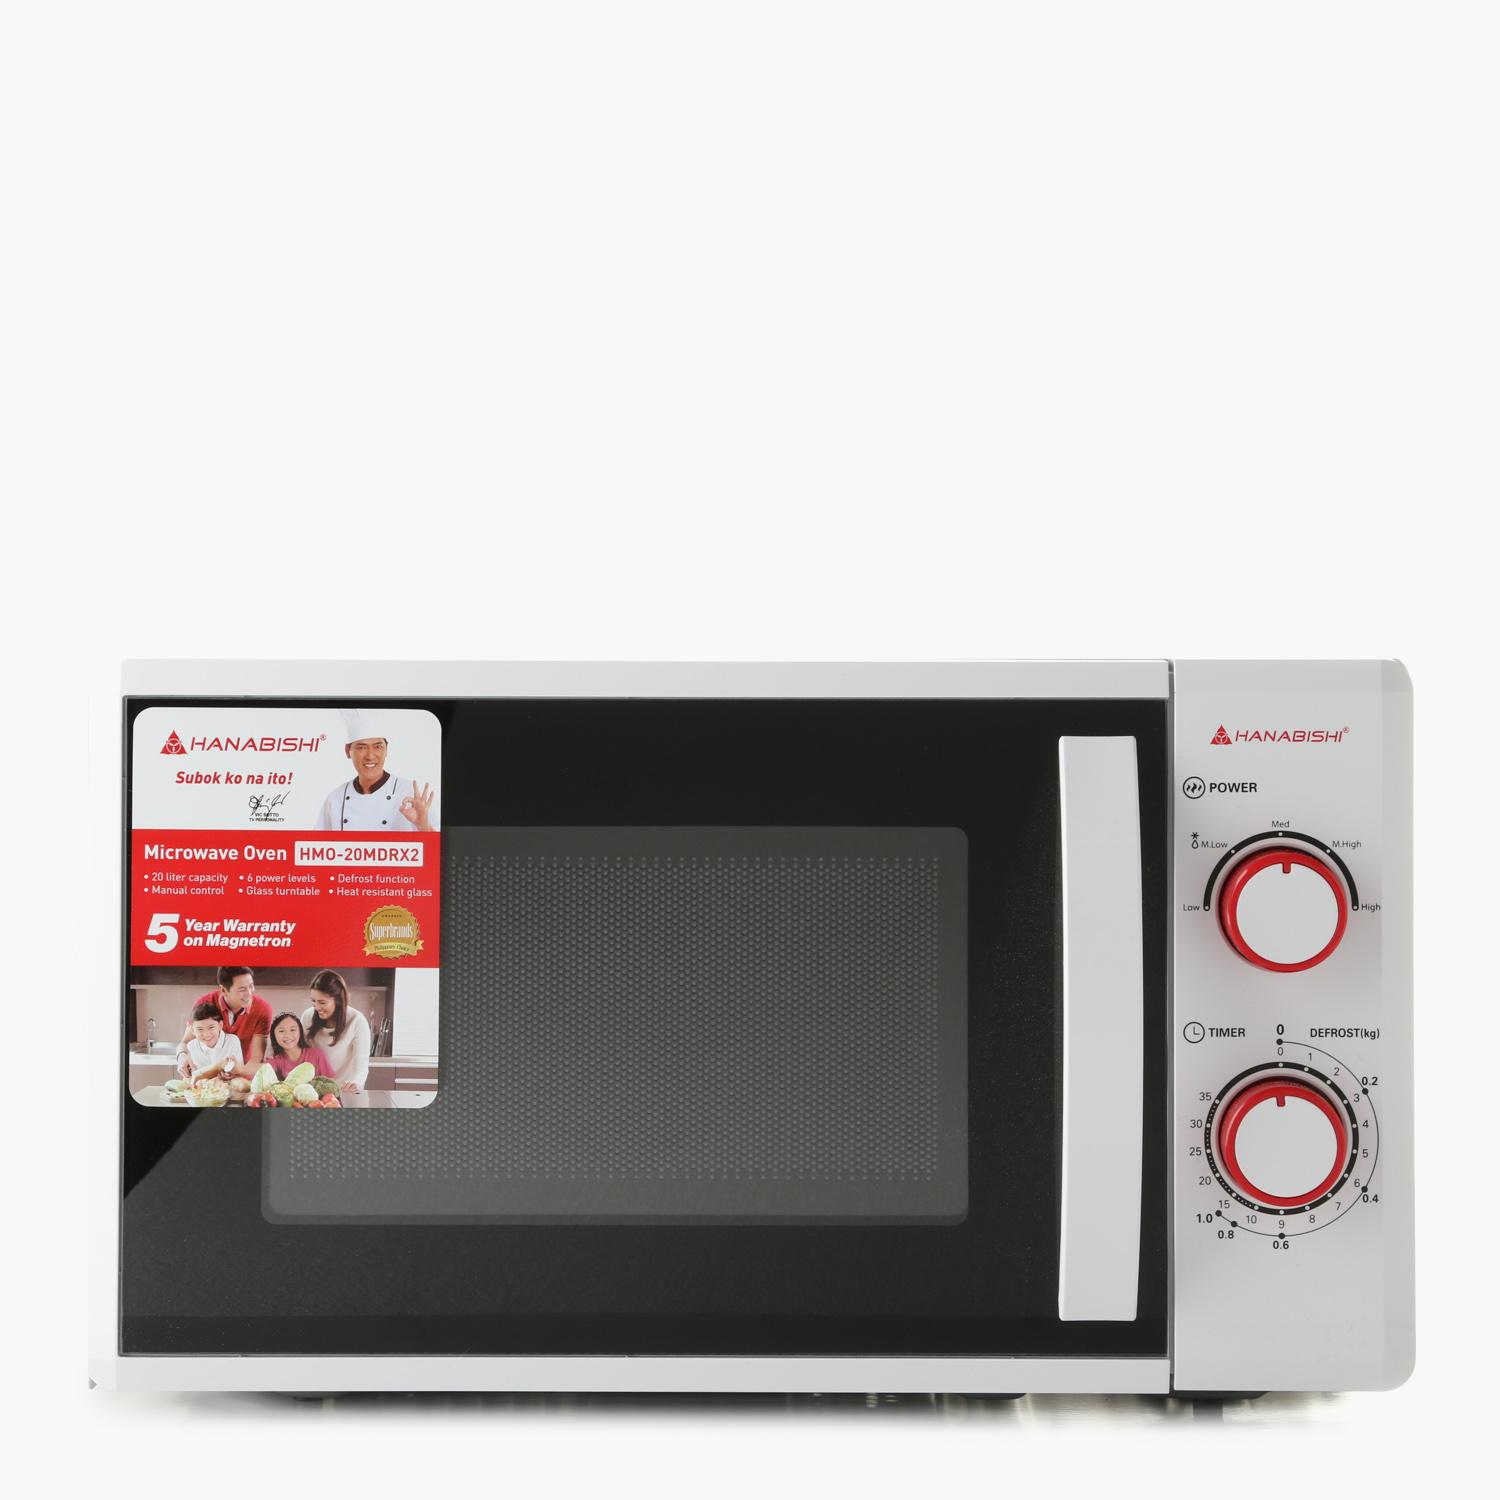 Microwave For Sale Large Prices Brands Review In Electrolux Vacuum Cleaners Wiring Diagram Model Hanabishi 20l Oven Hmo 20mdrx2